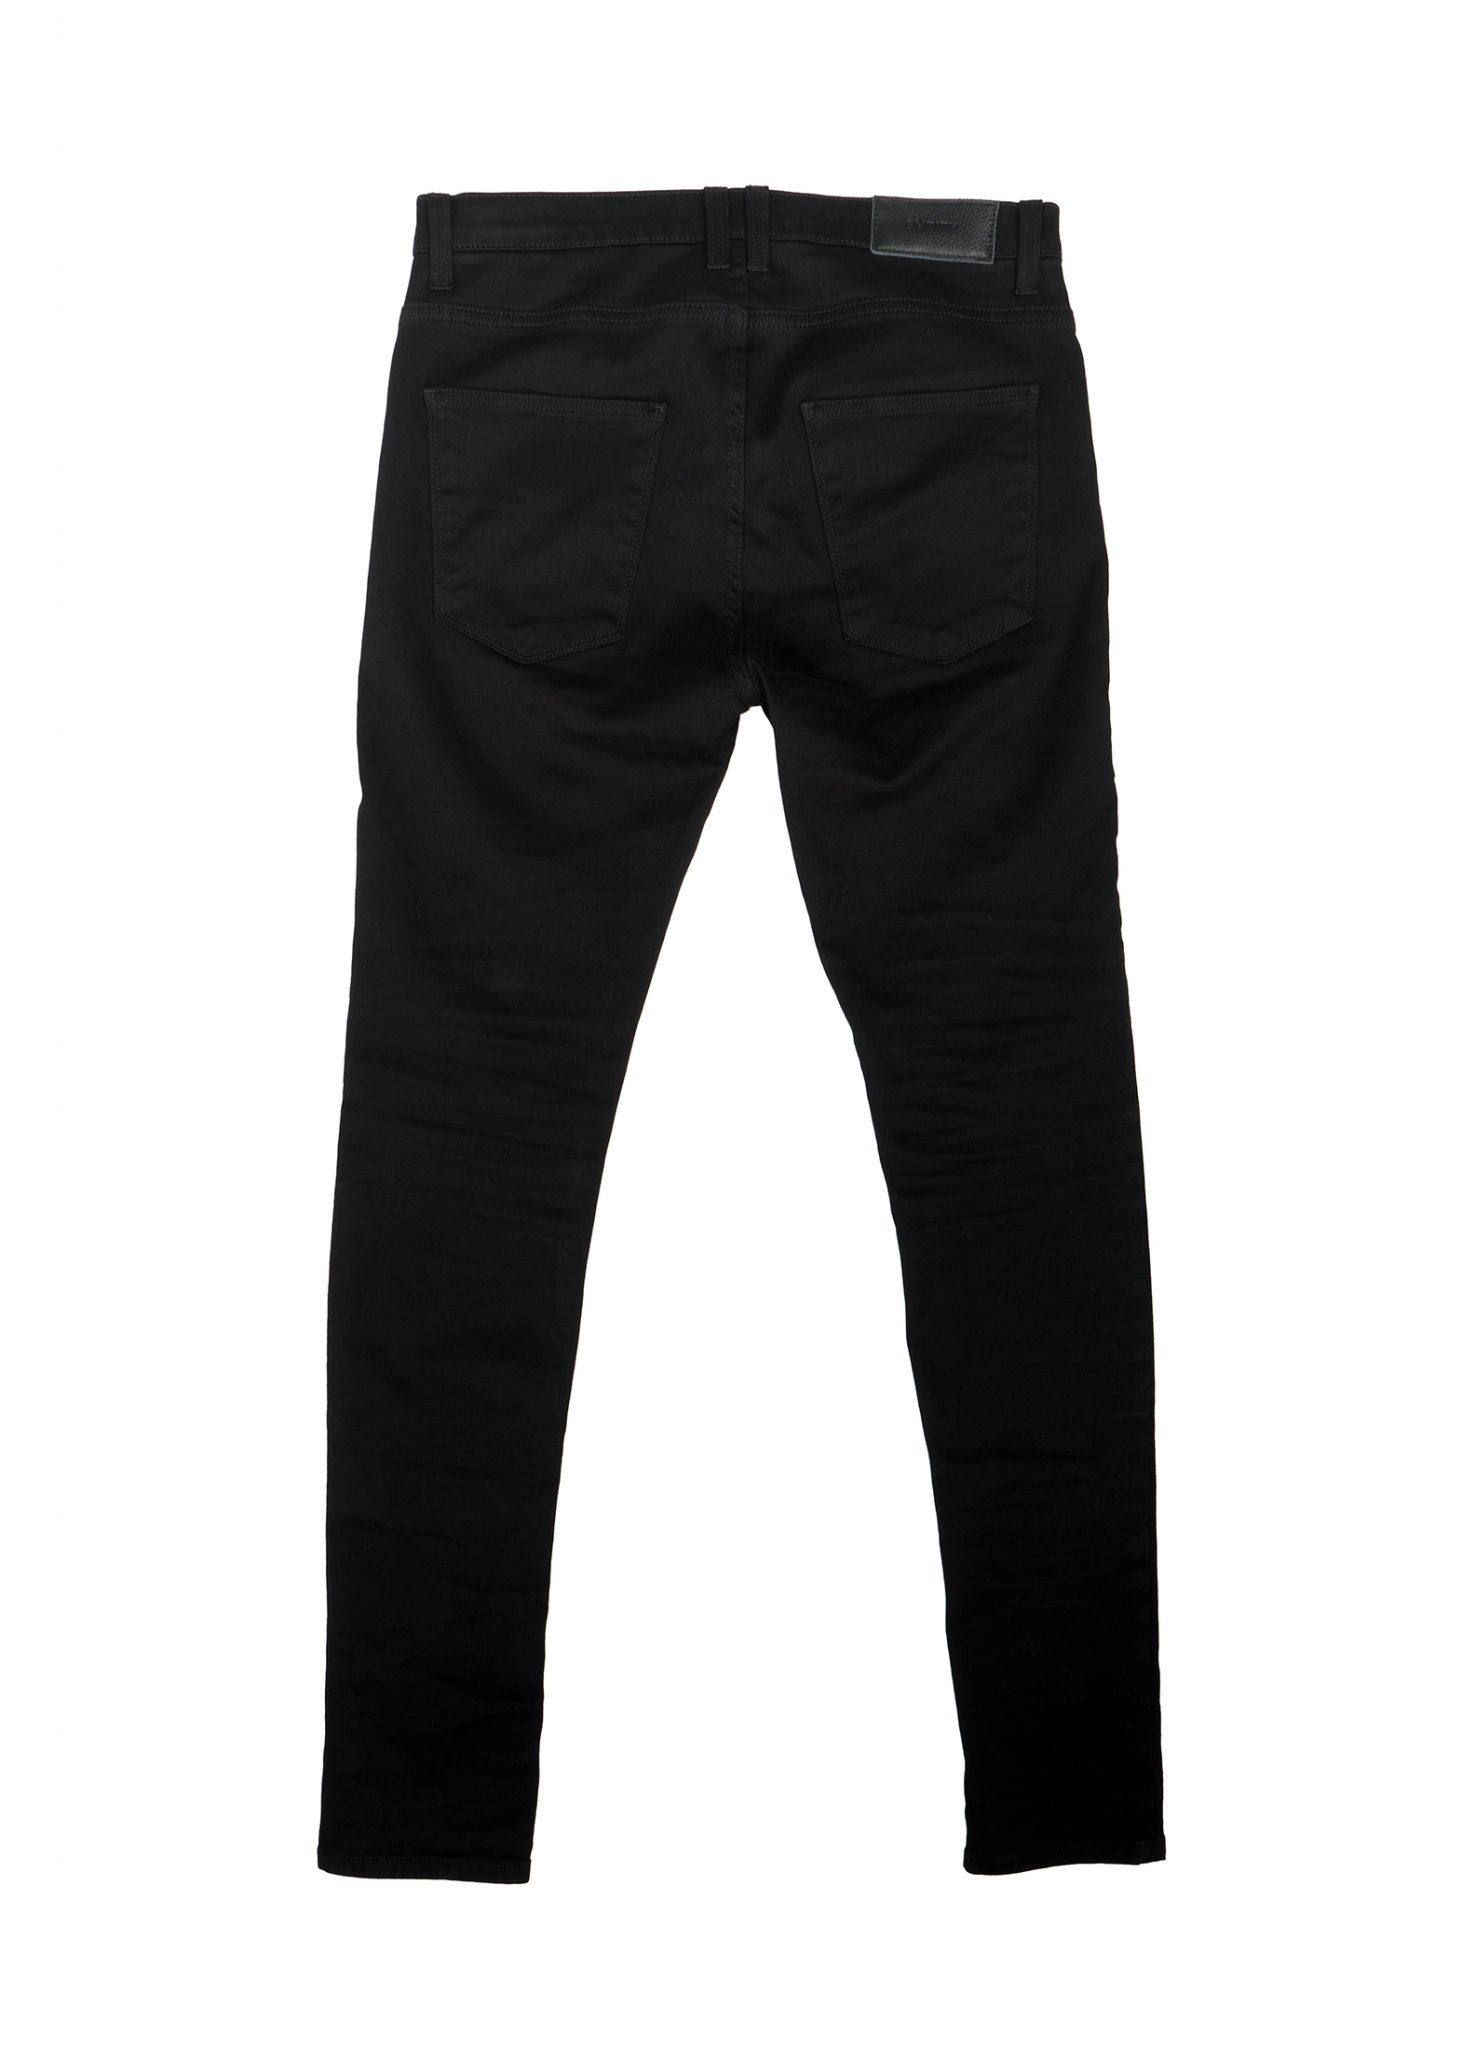 These are the best skinny jeans, I don't have pencil legs (I'm about 5'11 and lbs, 14% bodyfat) and they don't cling to your body like yoga pants.